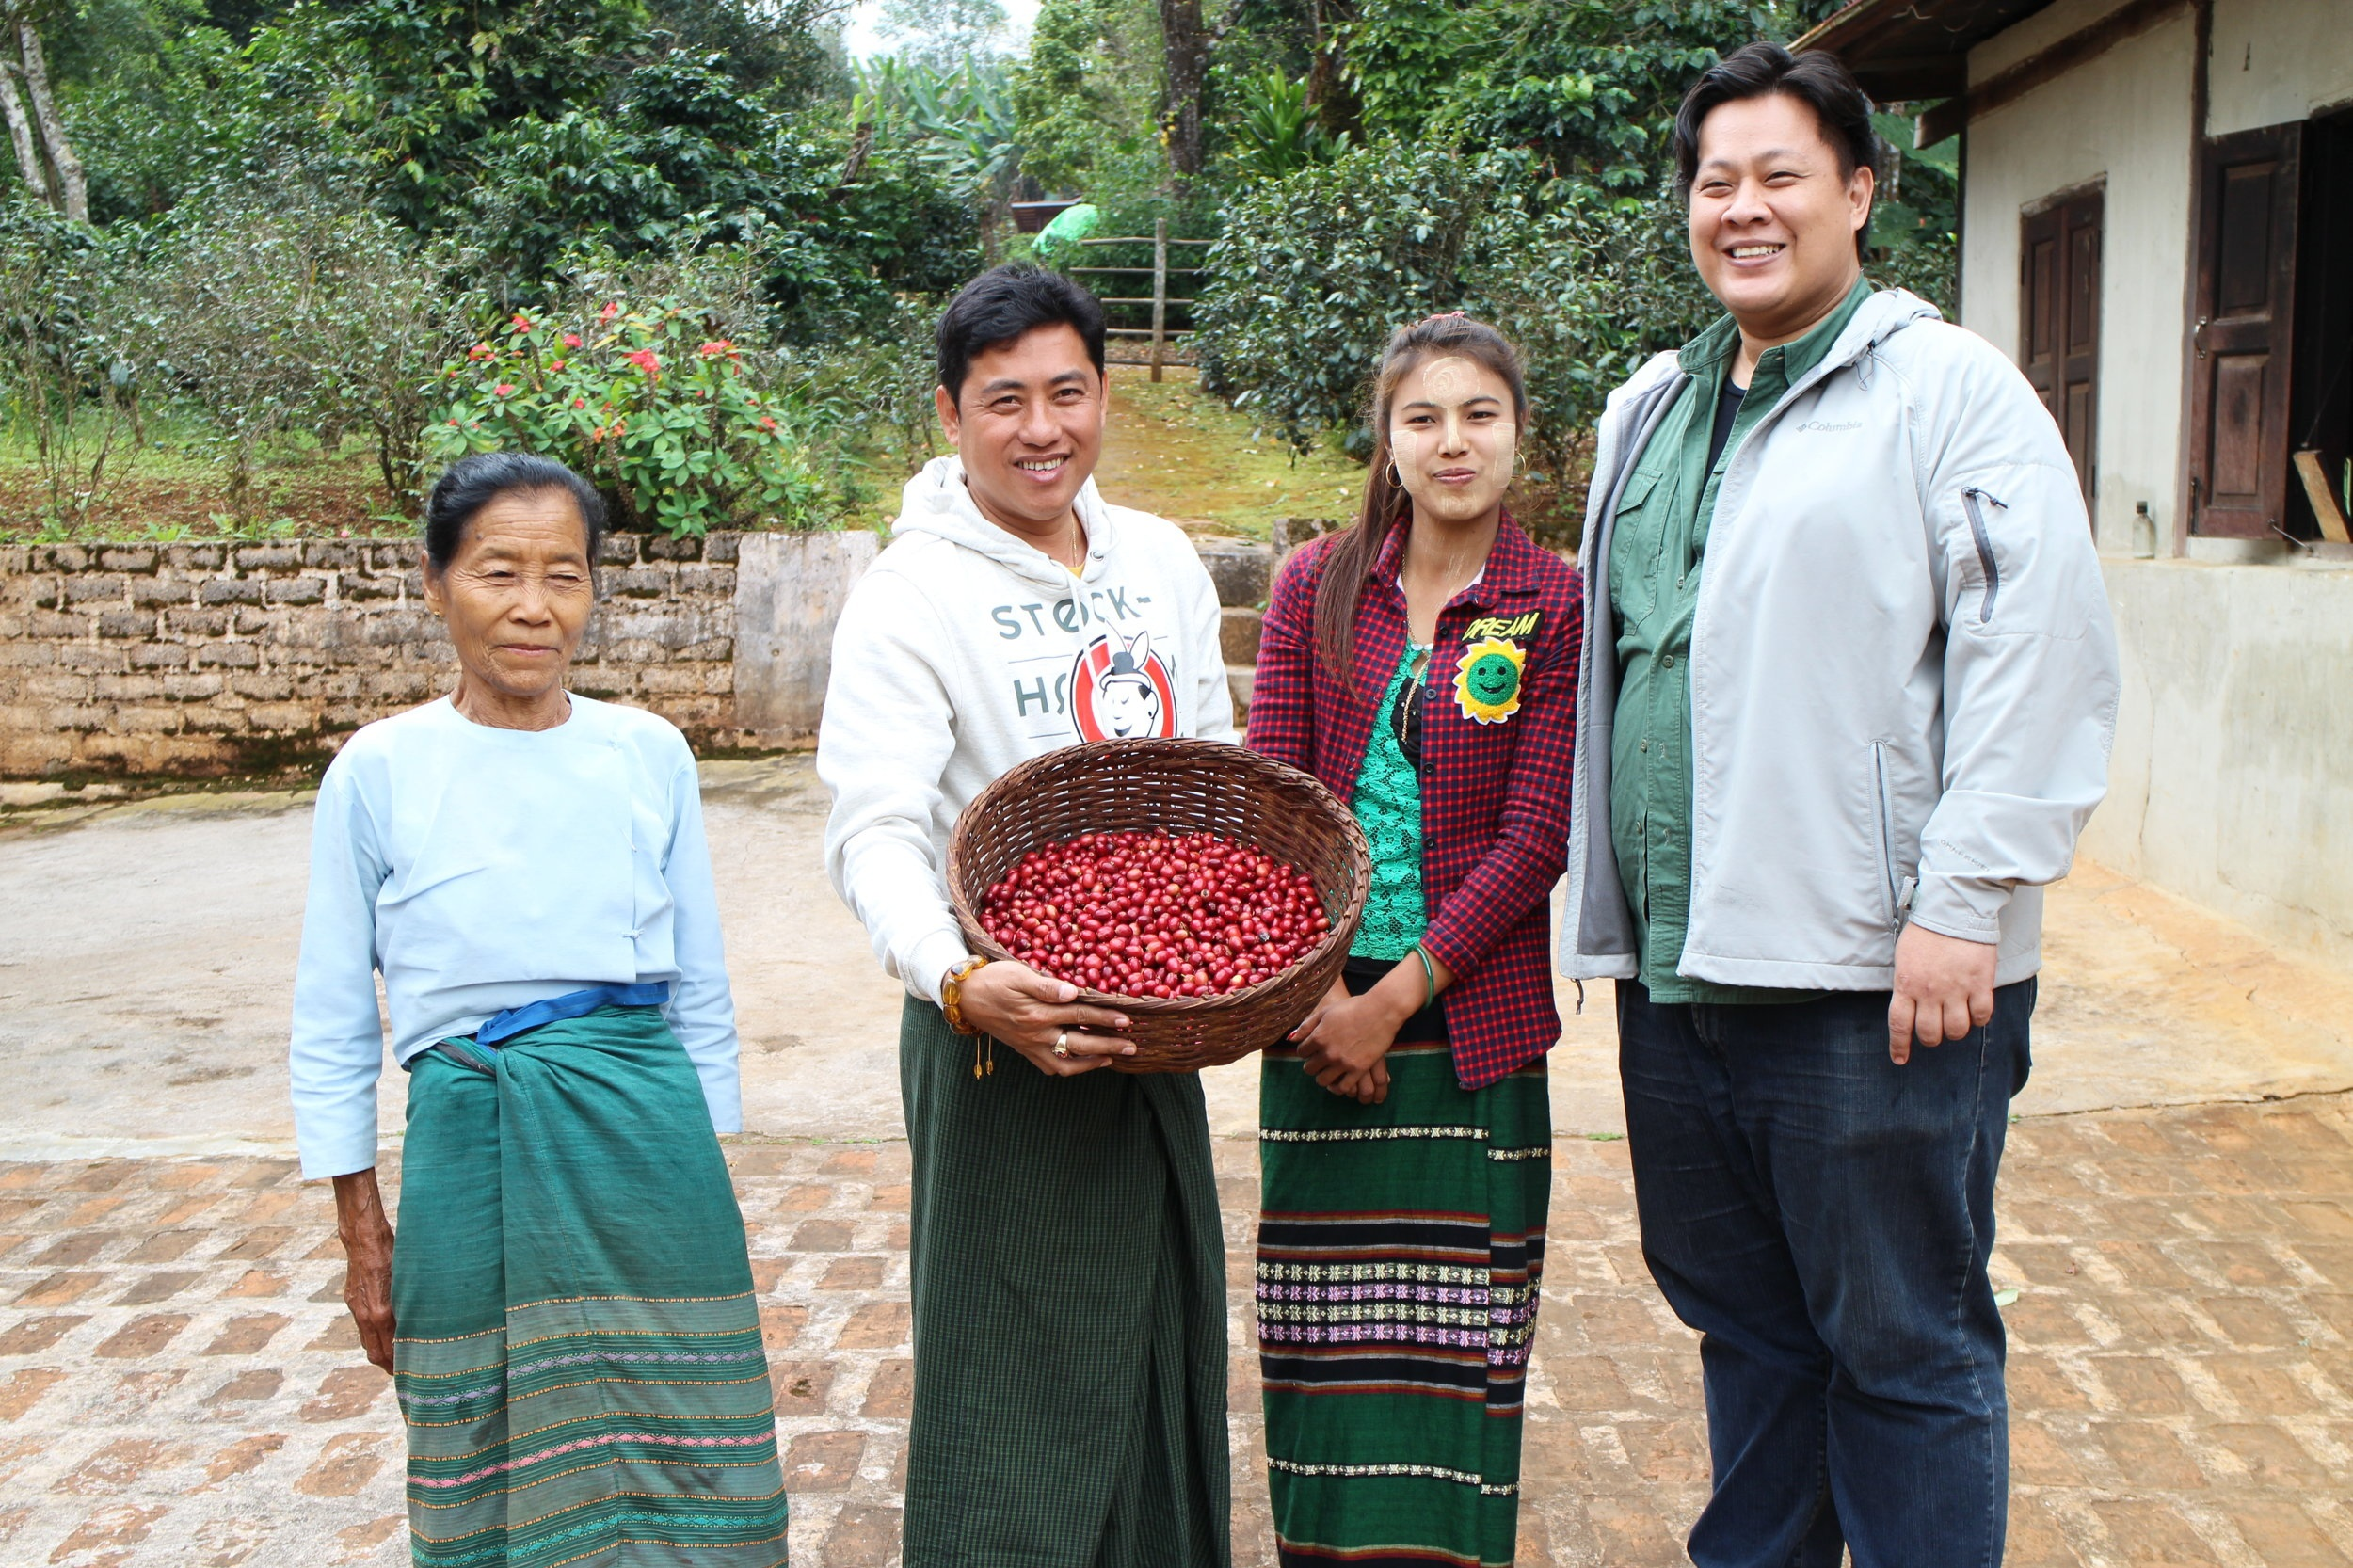 Genius Shan Highlands Coffee - Genius Coffee is an award-winning social enterprise which sources its coffee from over 100 farmers in Myanmar's Southern Shan State. Genius contributes to local education, healthcare, and forestry initiatives, and is focused on roasting and distributing coffee nationwide and abroad.